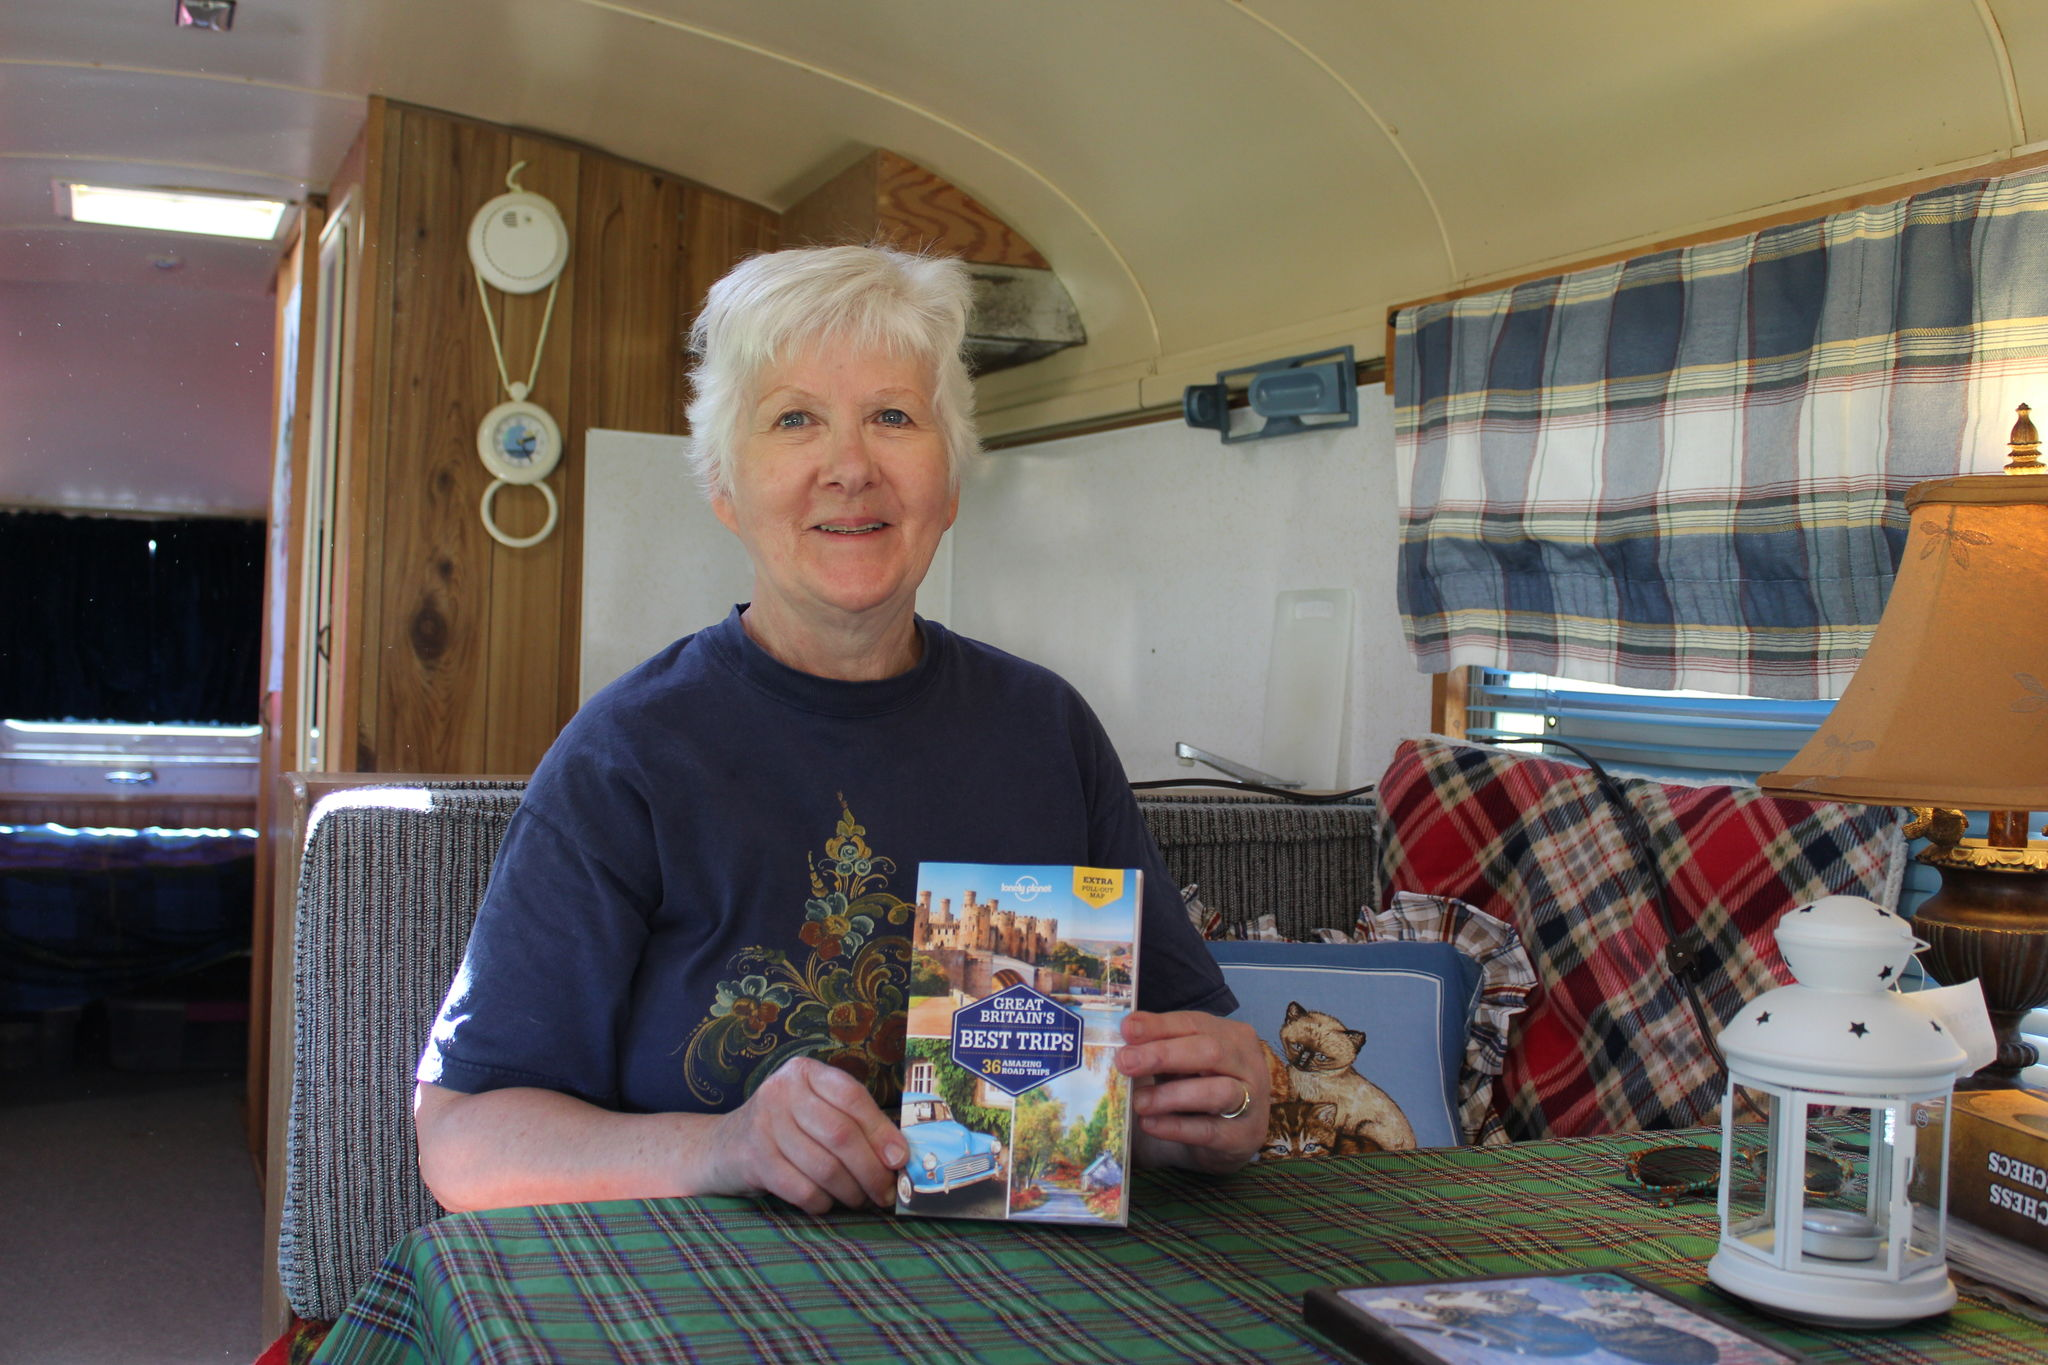 Margaret Feilberg displays a copy of a favourite Great Britain travel guide that inspired the Scottish theme of a cabin fashioned from a converted school bus. Bill Stevenson's family tartan adorns the dining table.